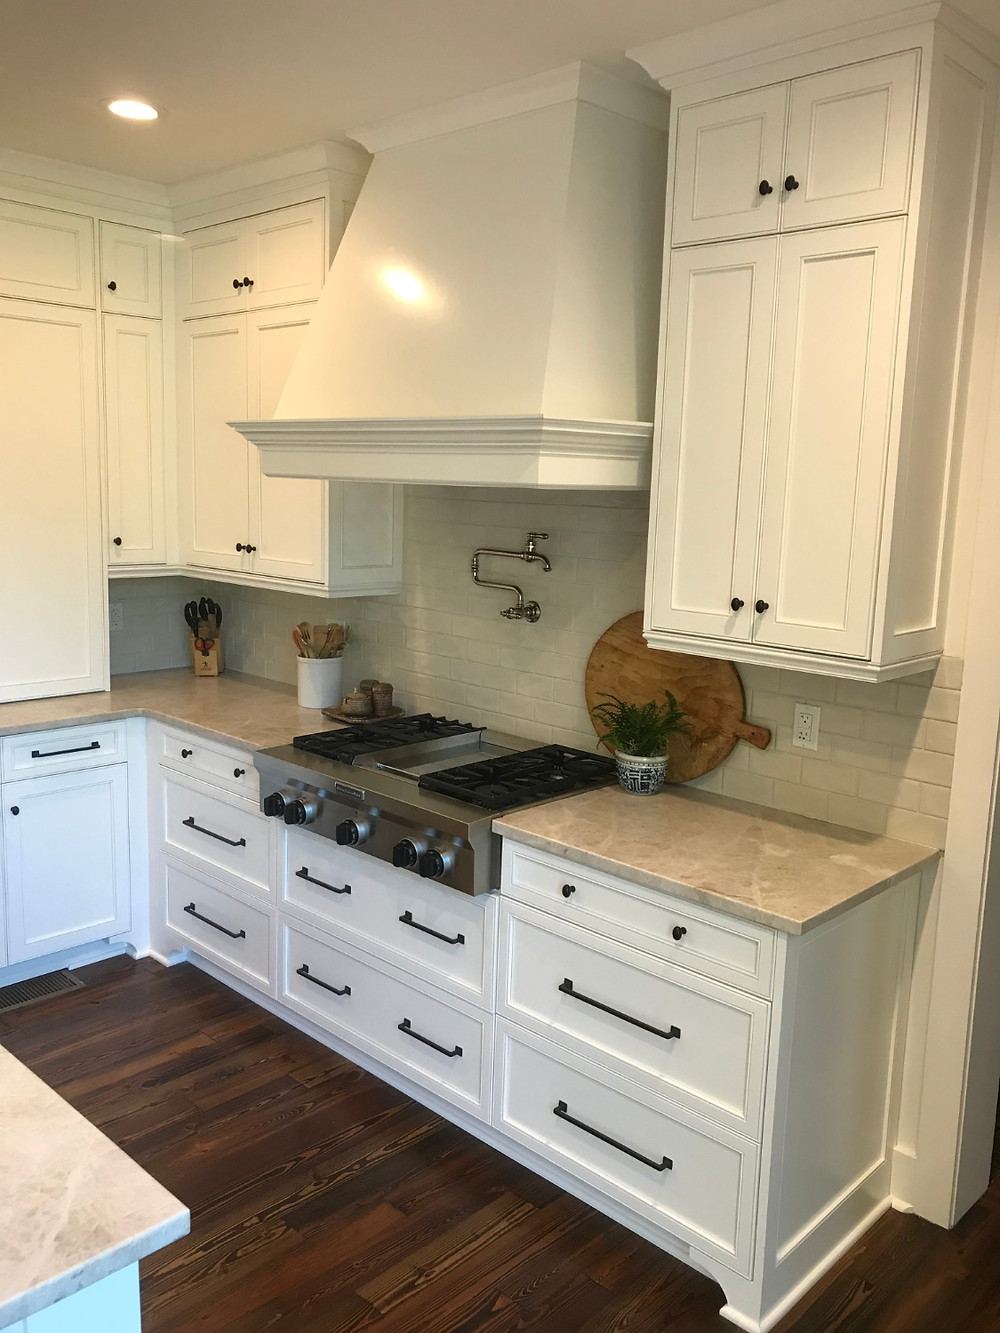 mccarley cabinets modern kitchen layout cook zone